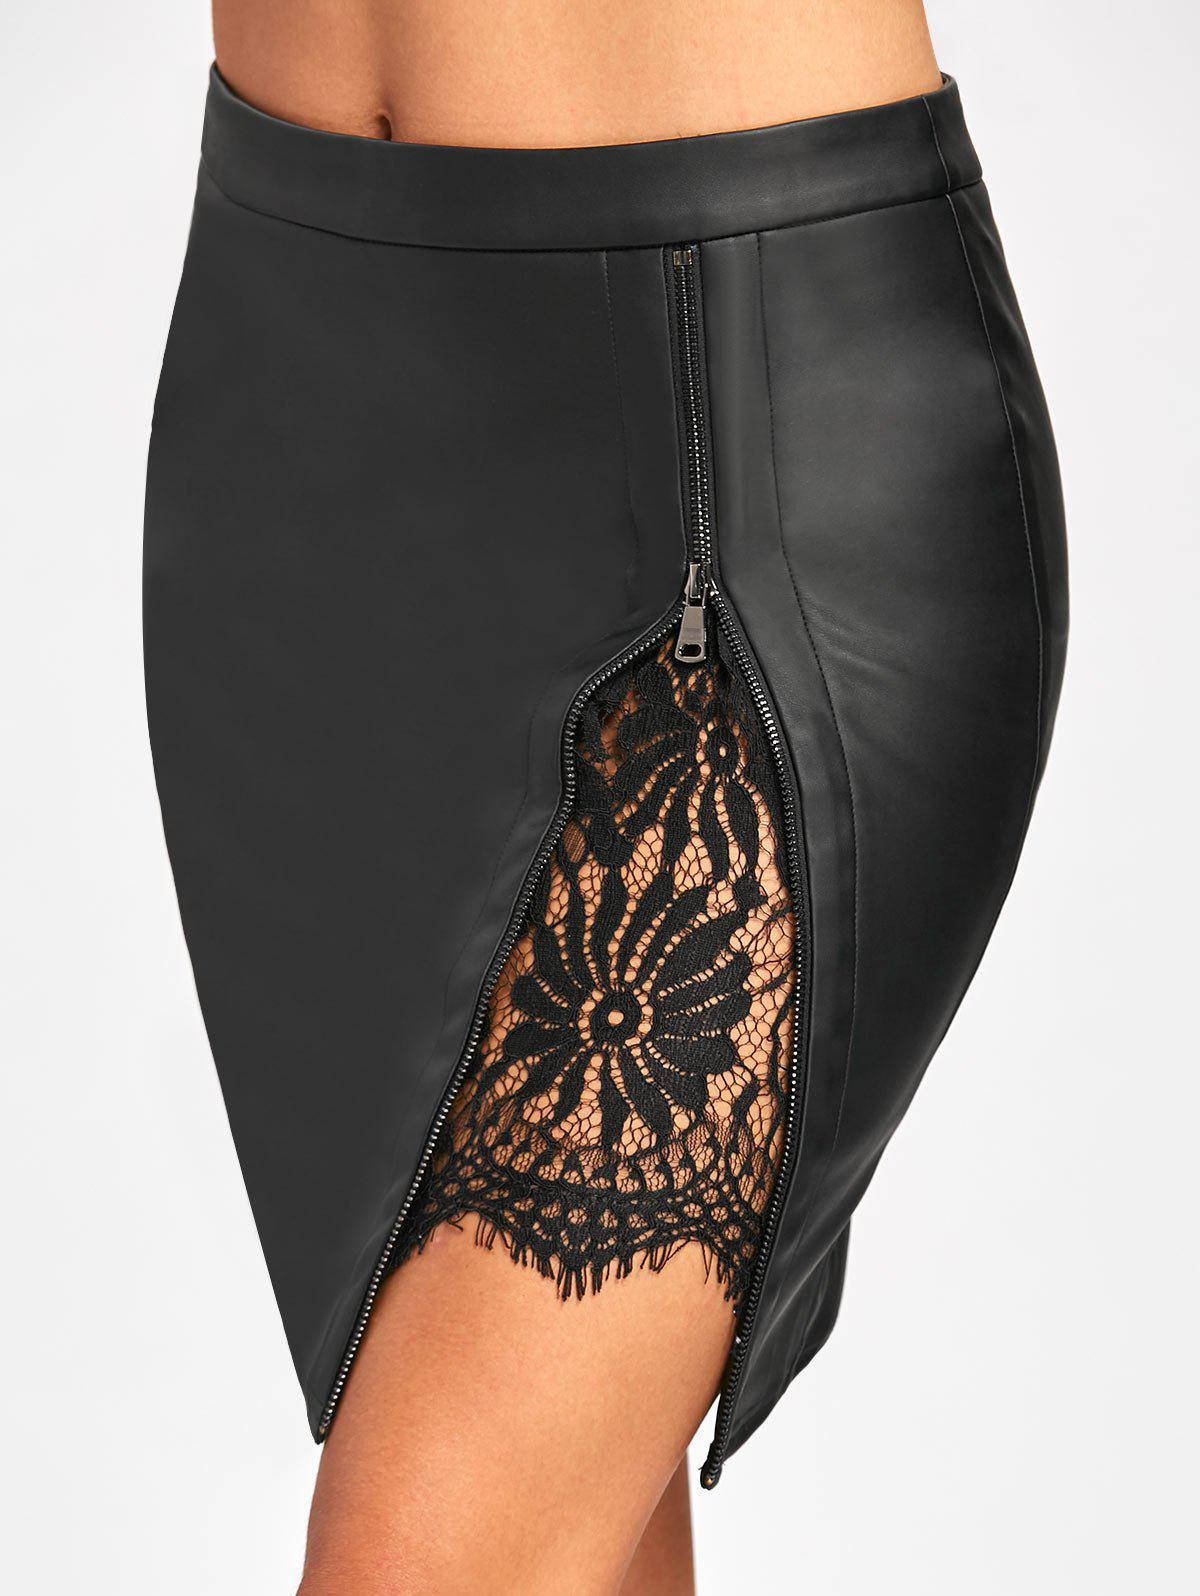 Lace Insert Fitted Faux Leather Skirt - BLACK XL